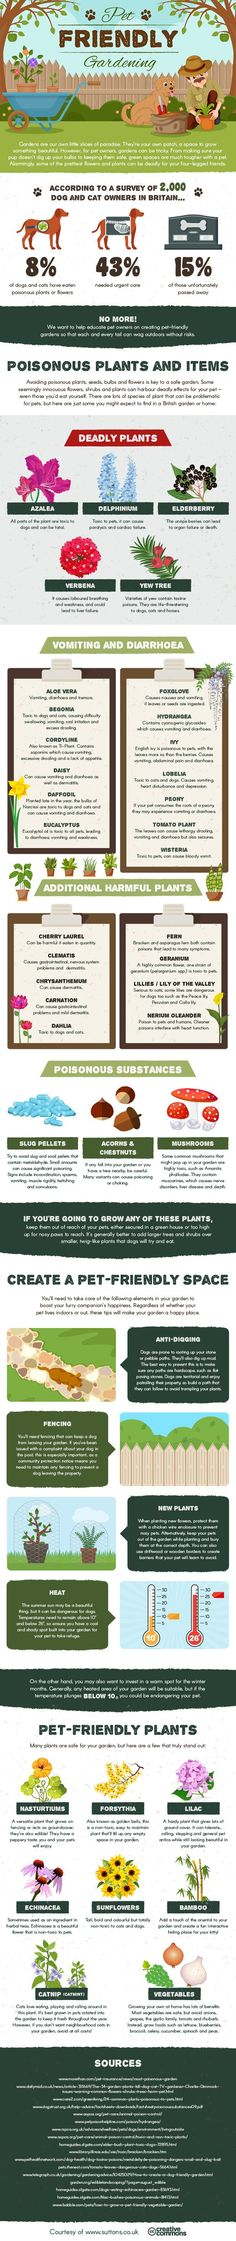 Planning Your Spring Garden Make Sure Its Dog Friendly Infographic